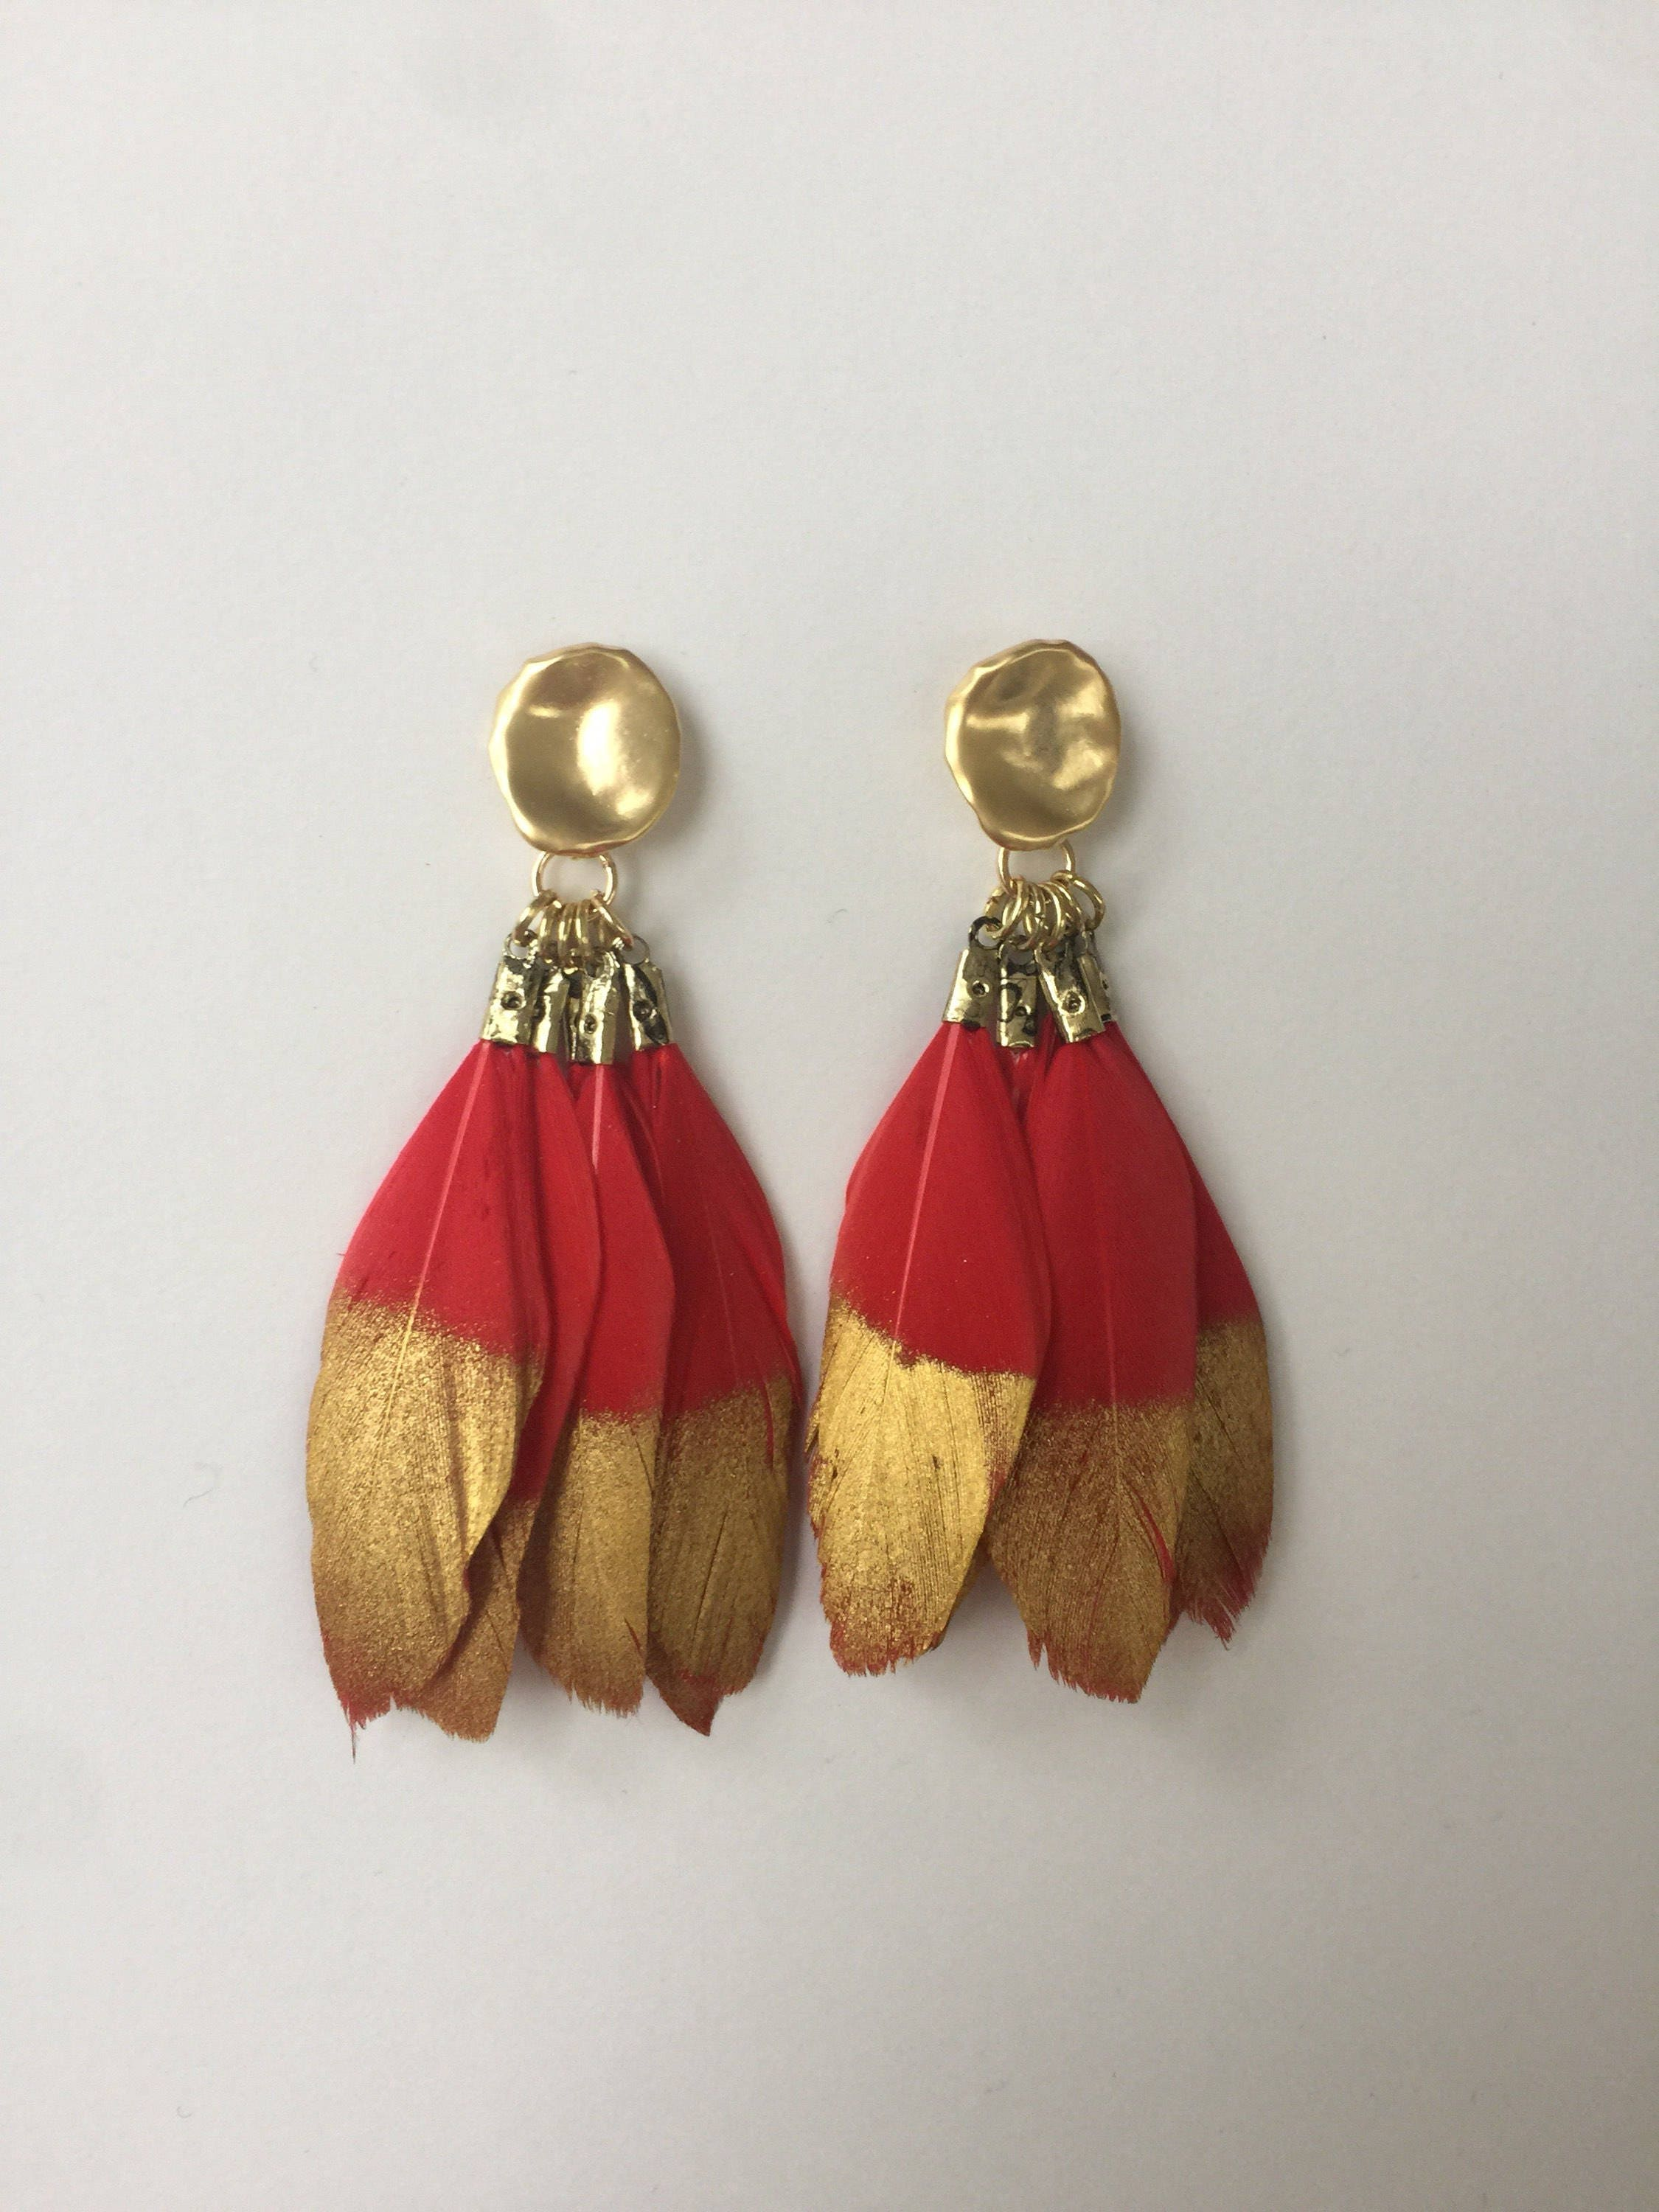 vintage l tone with red the stones saint gold s earrings jewelry v more from laurent yves id for gorgeous